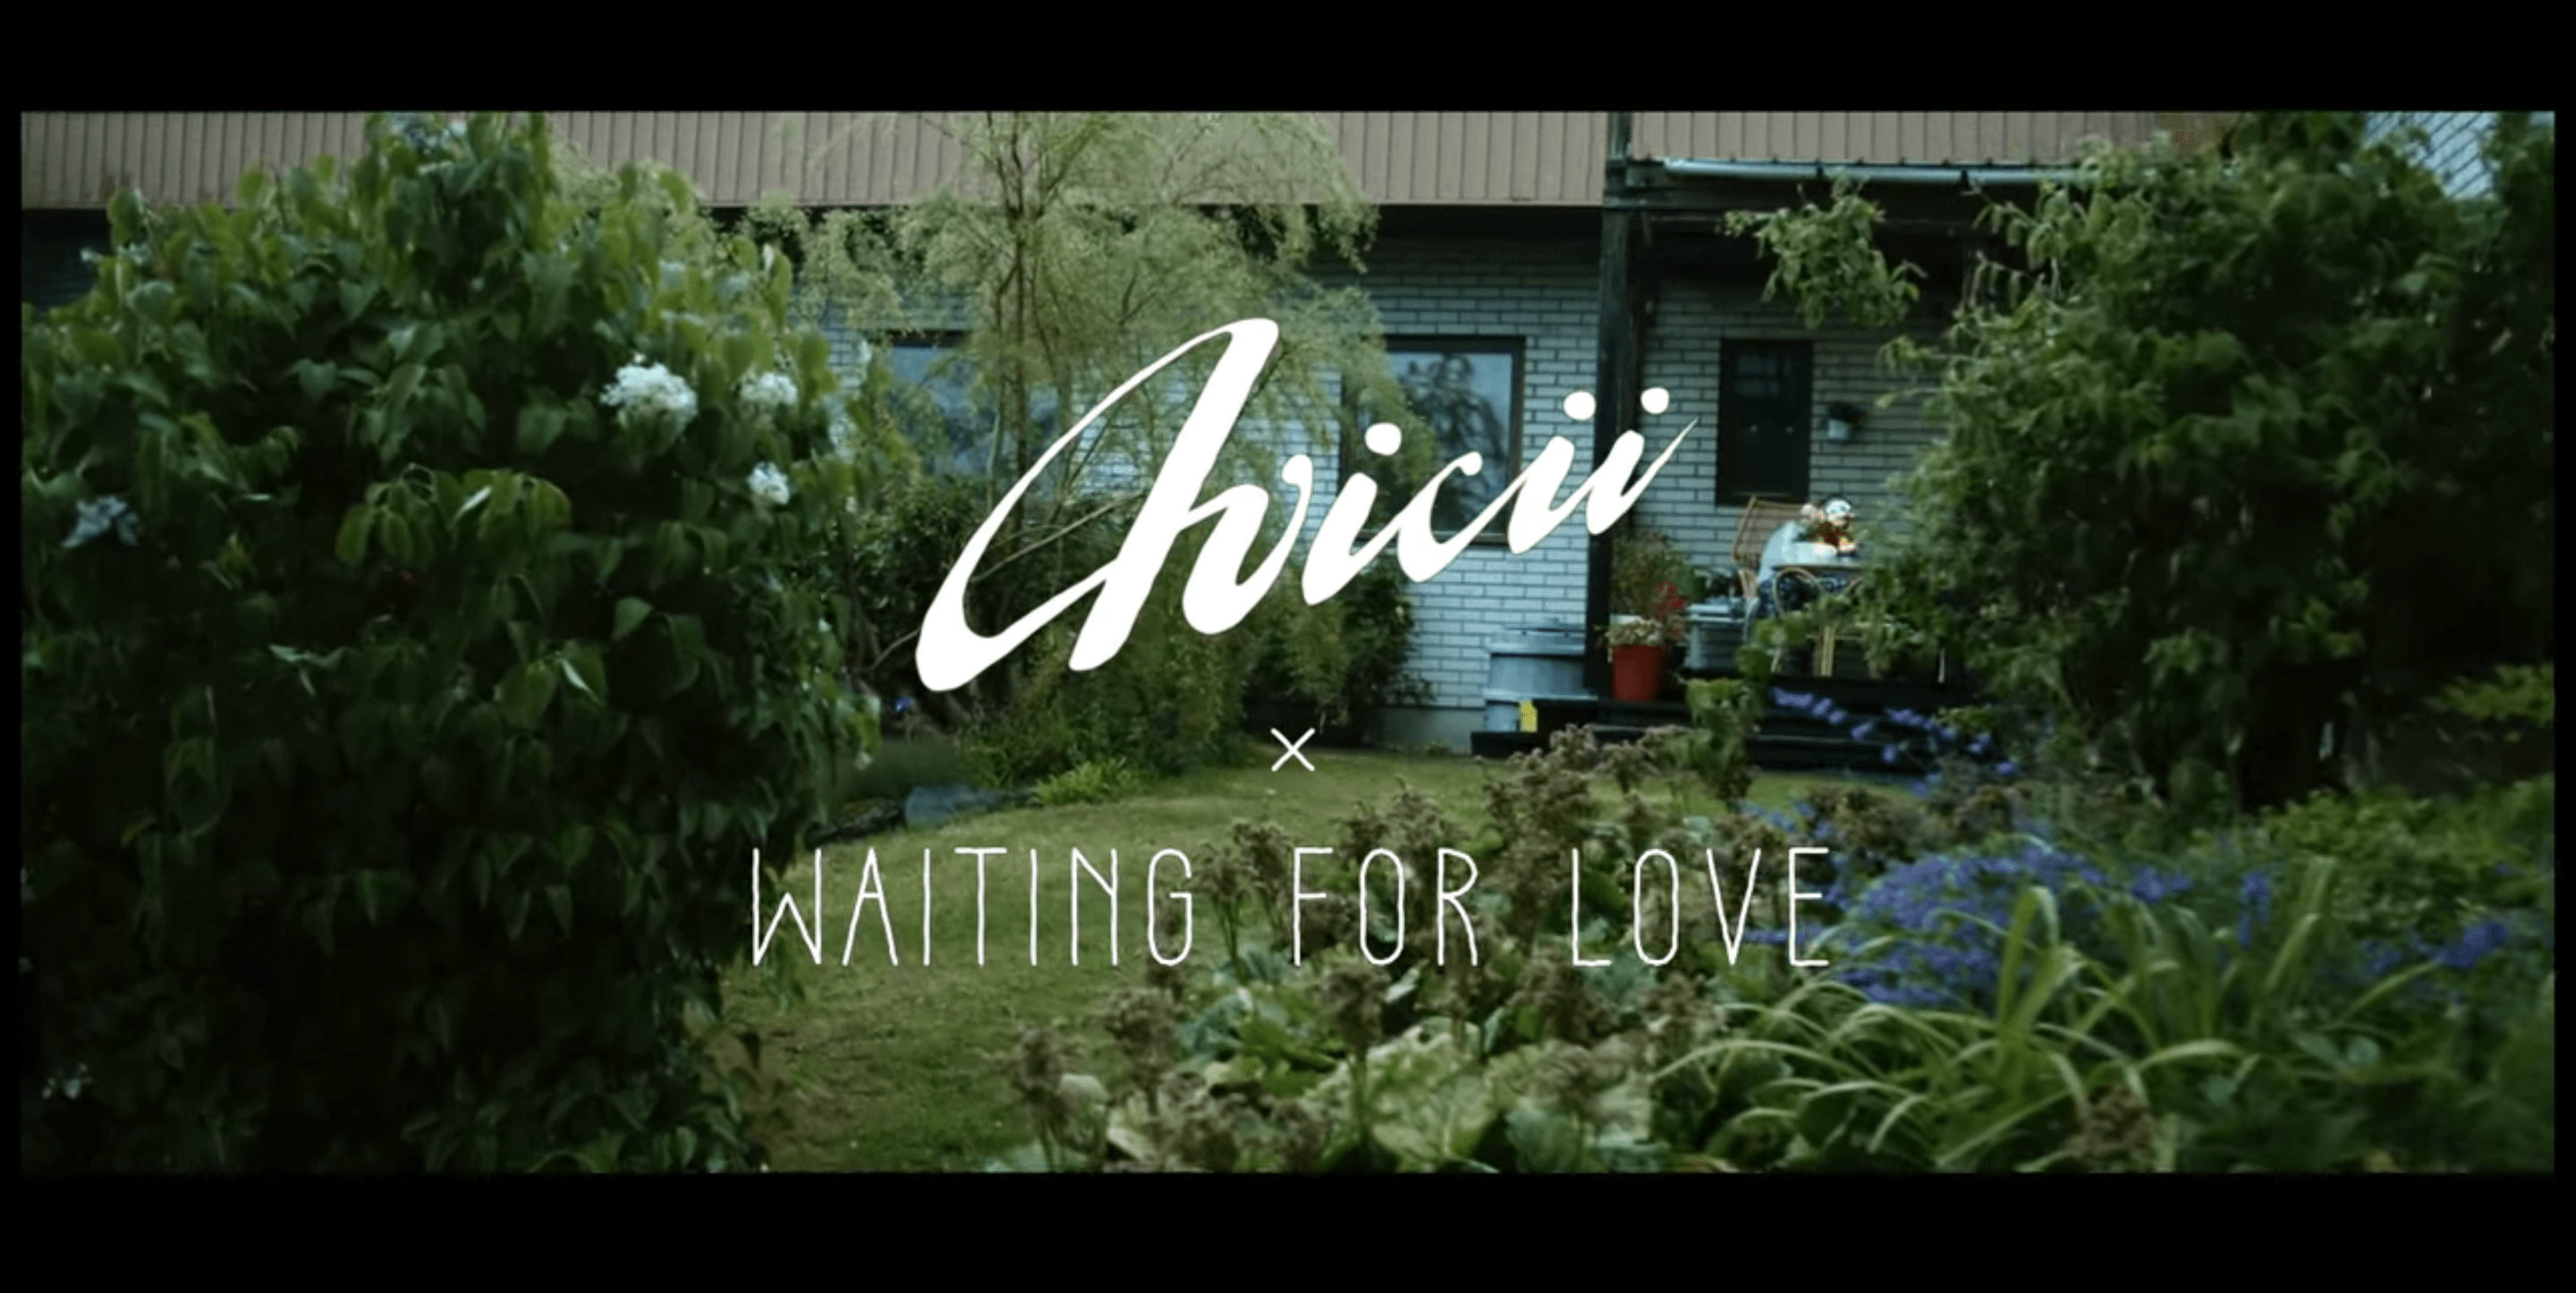 แปลเพลง Waiting For Love - Avicii